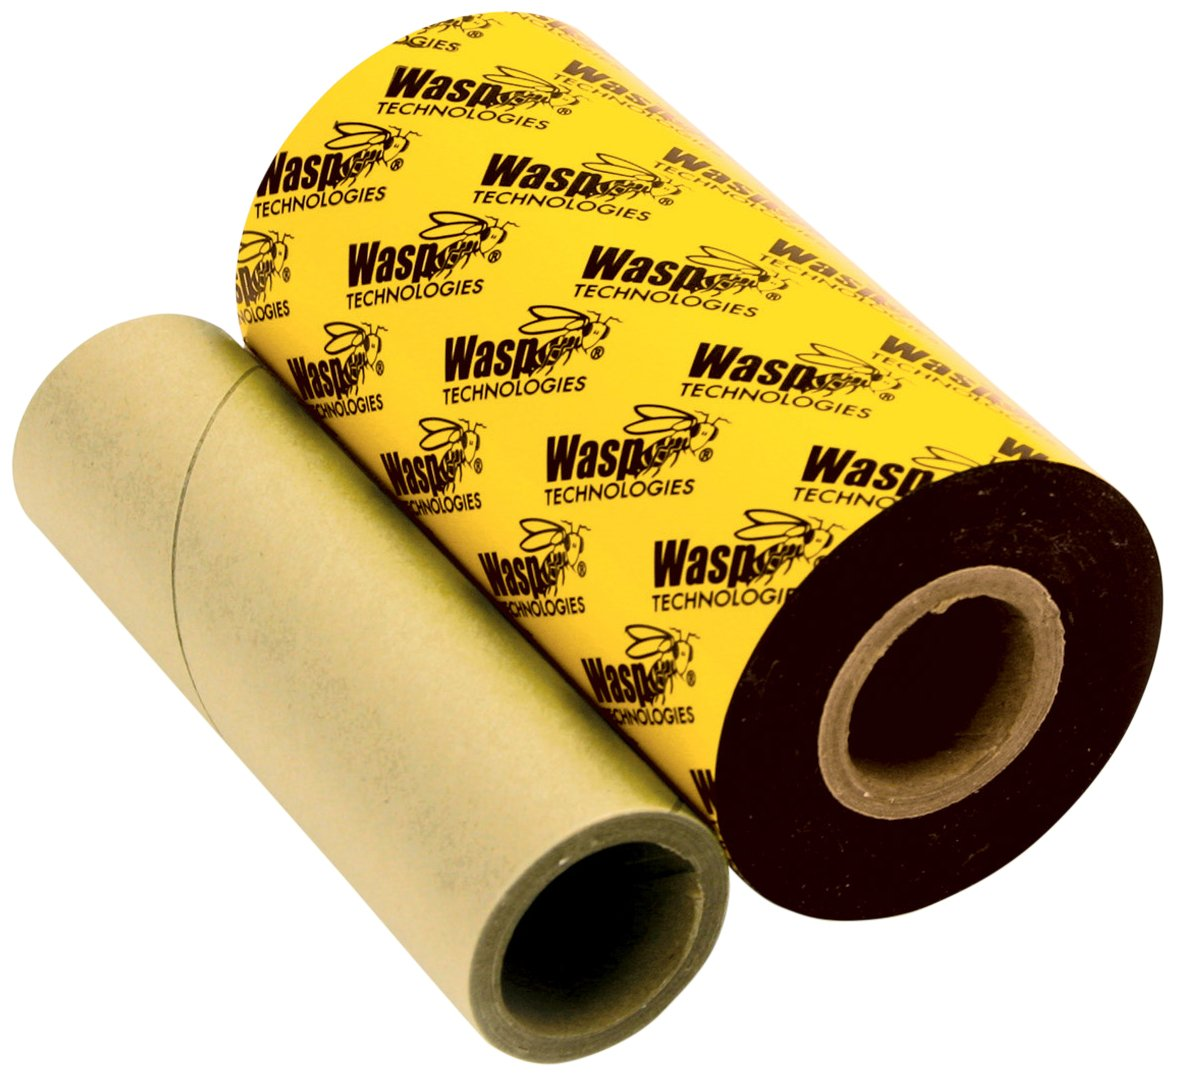 Wasp Barcode Technologies 633808431228 Wxr 2.16 X 820 Resin Ribbon For Wasp Wpl305 & 606 Label Printer